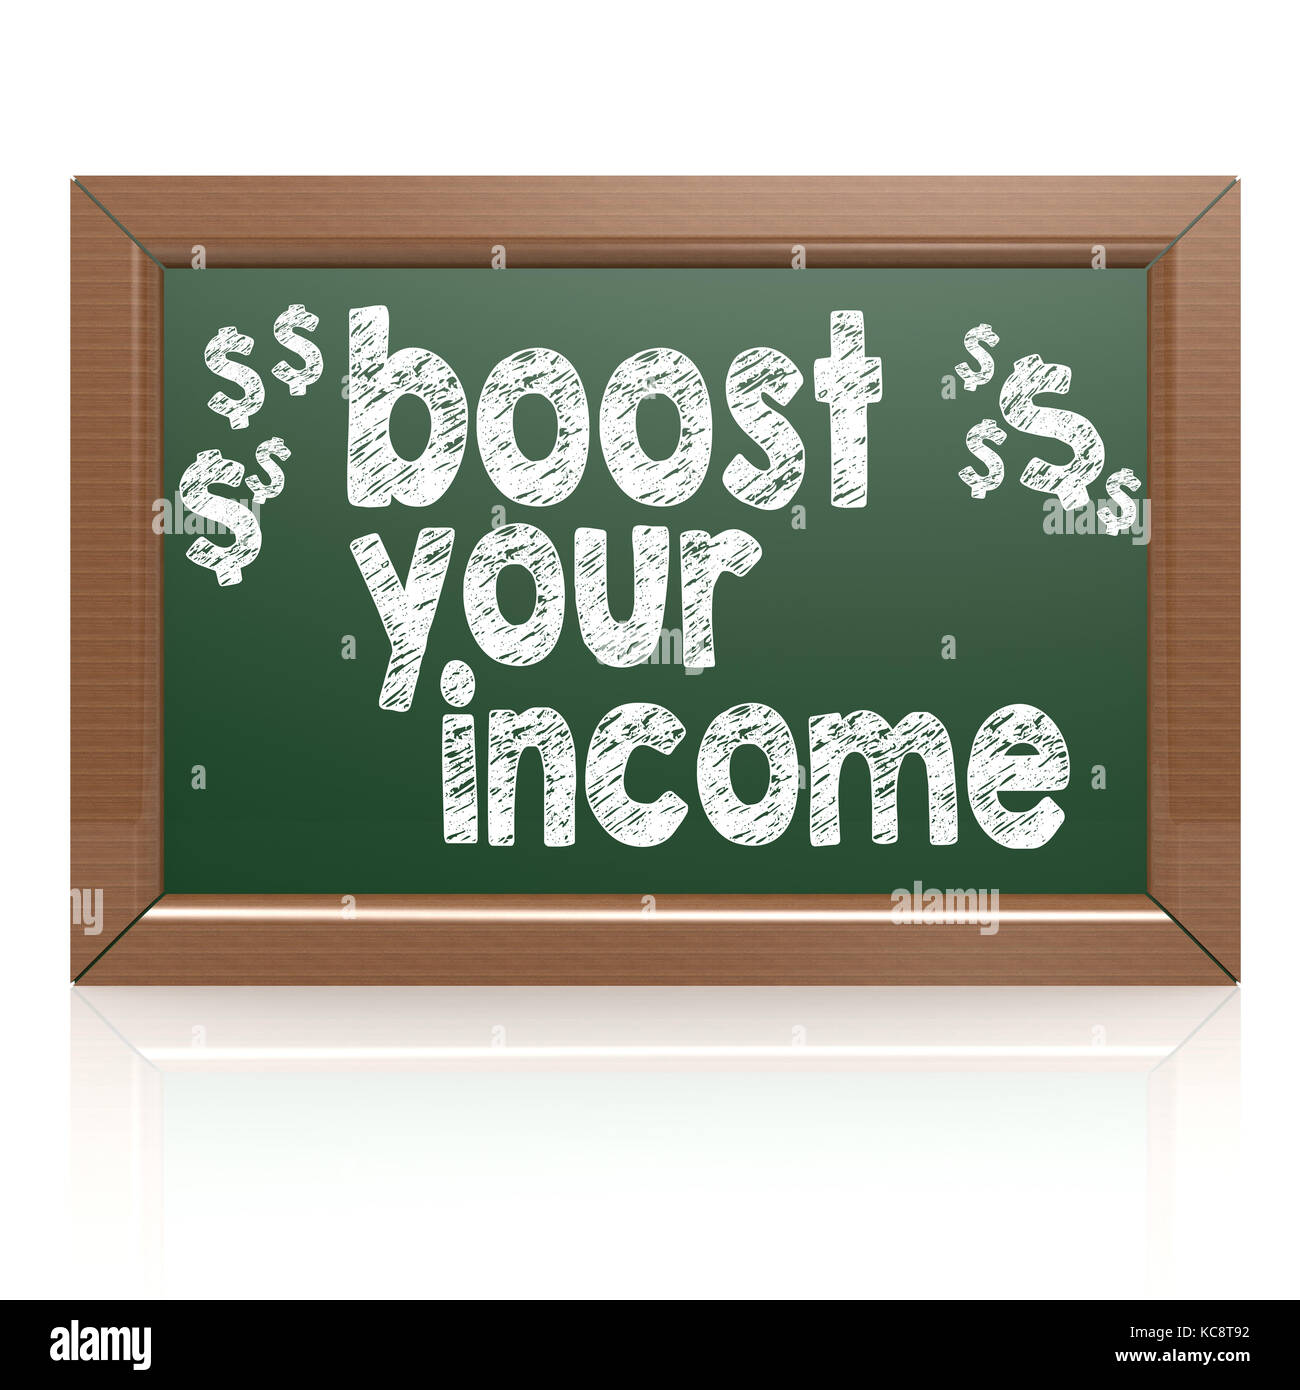 Boost Your Income on a chalkboard image with hi-res rendered artwork that could be used for any graphic design. - Stock Image